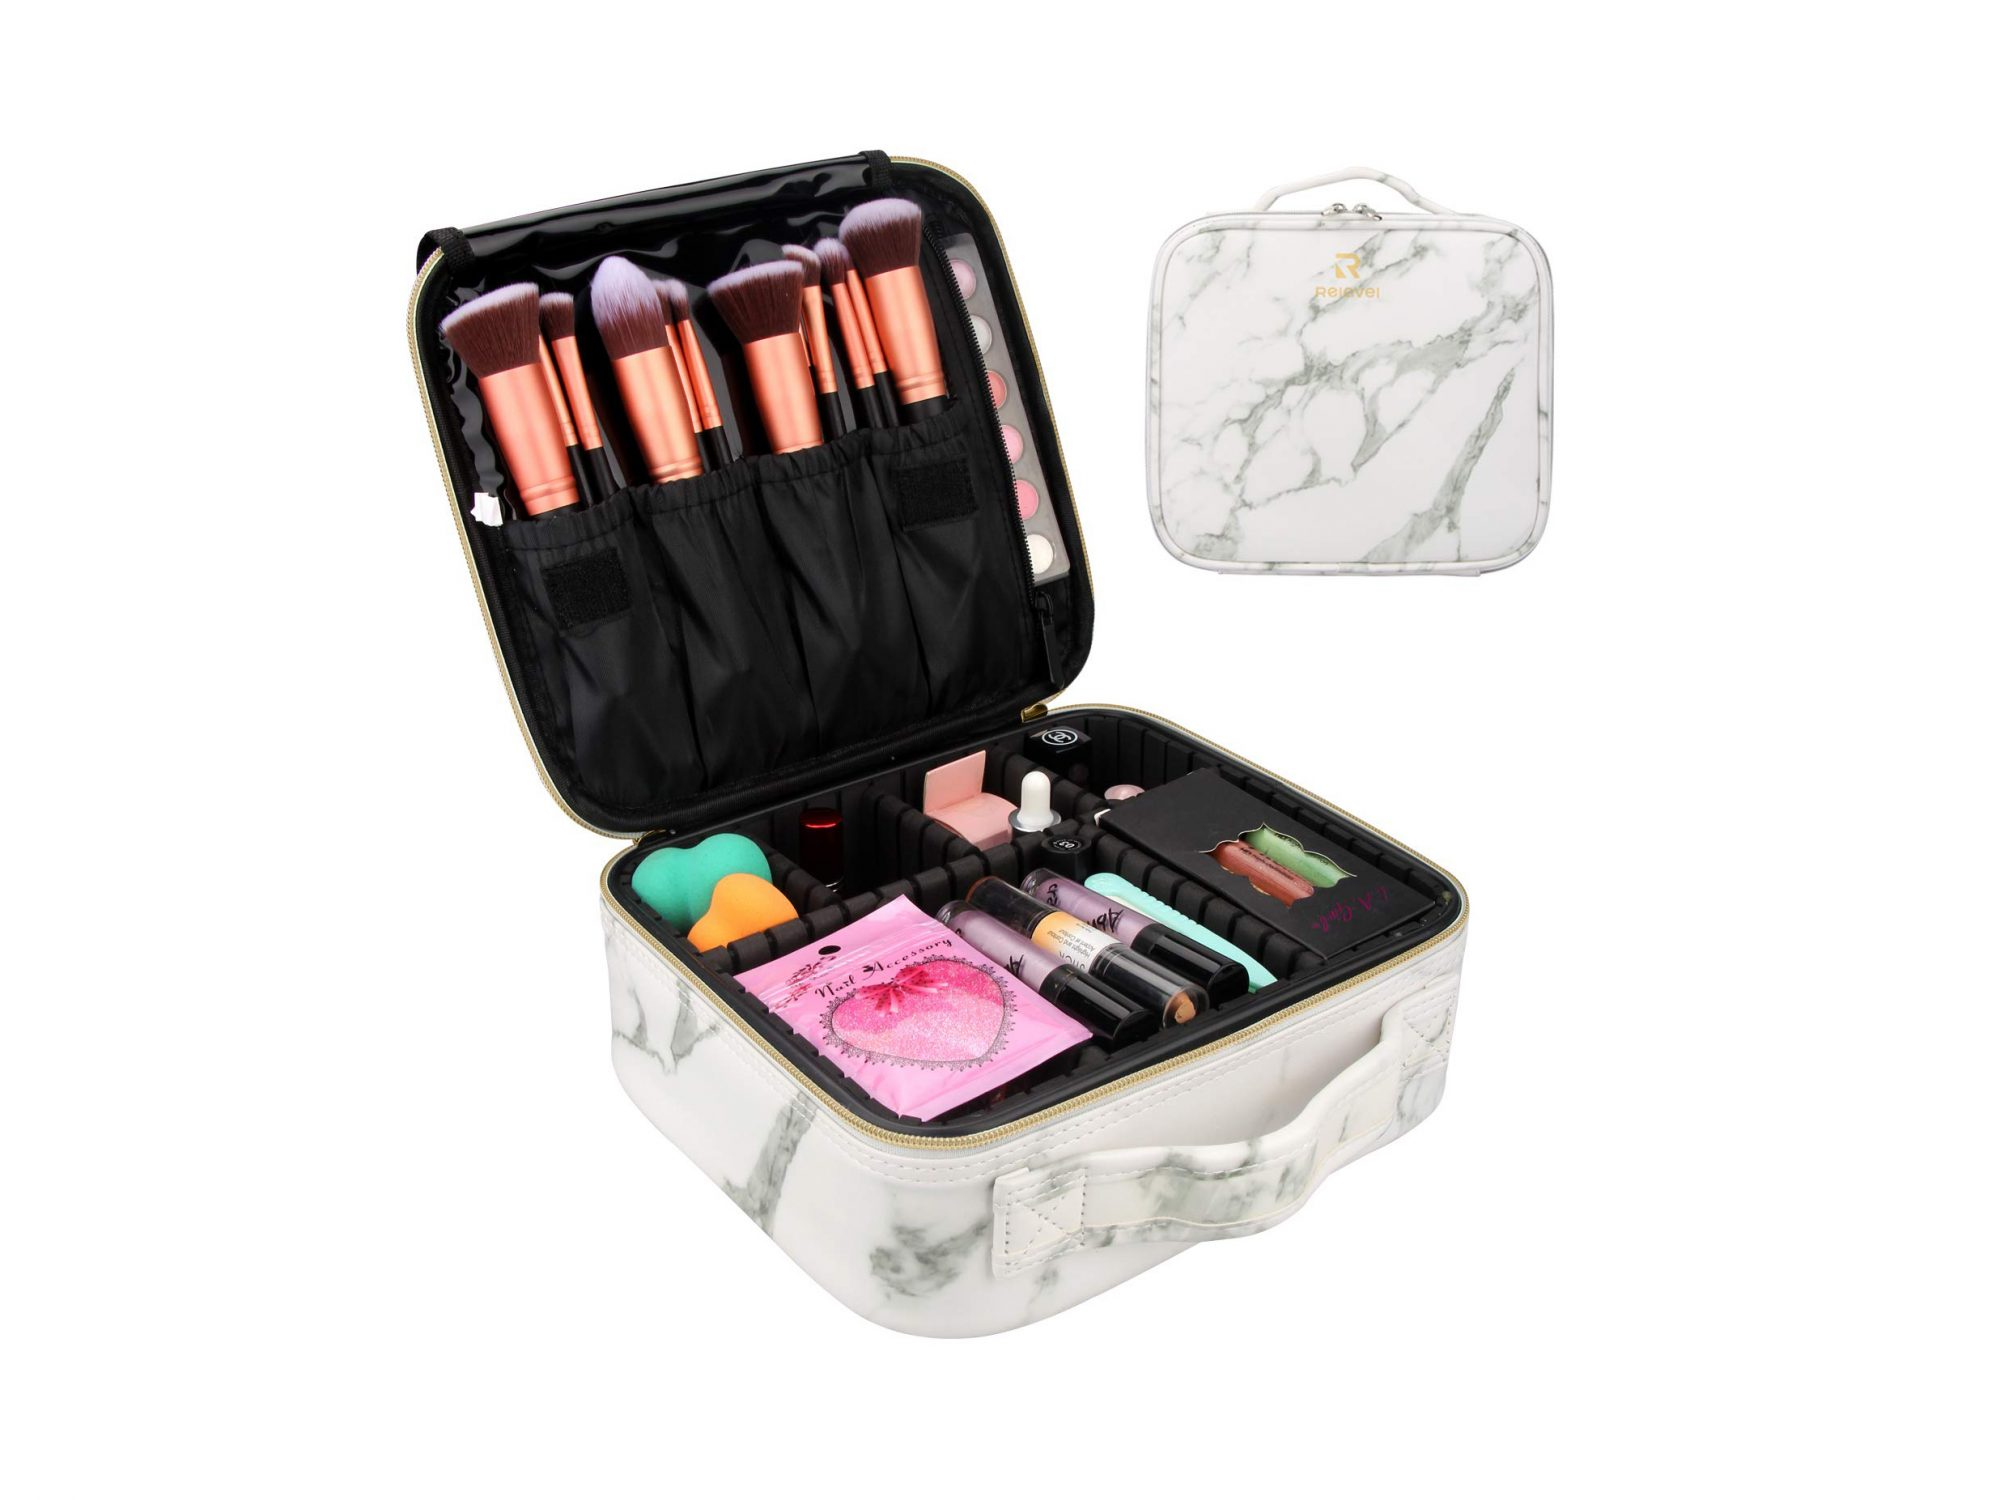 Relavel Makeup Case